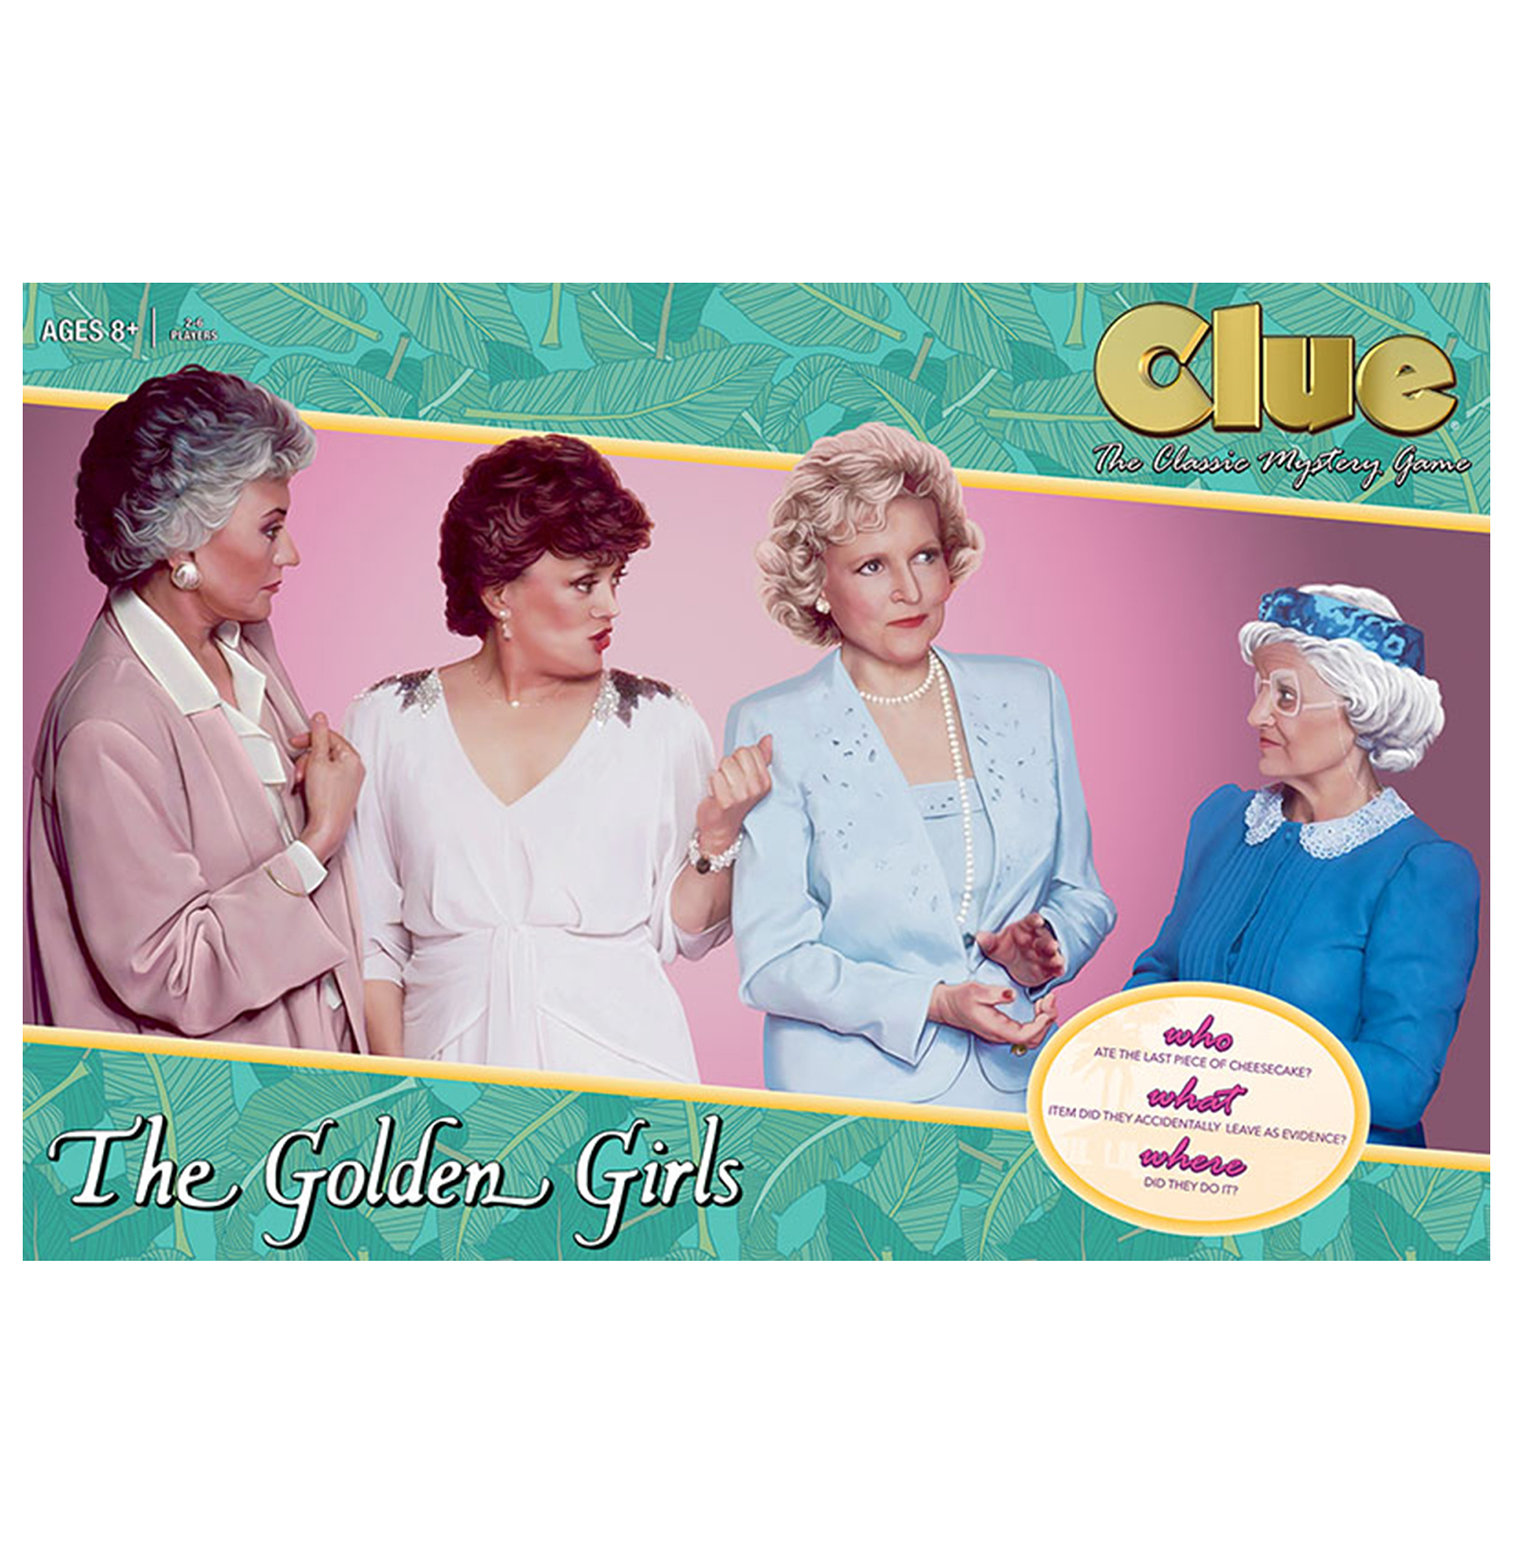 Best White Elephant Gifts: Golden Girls Clue Game